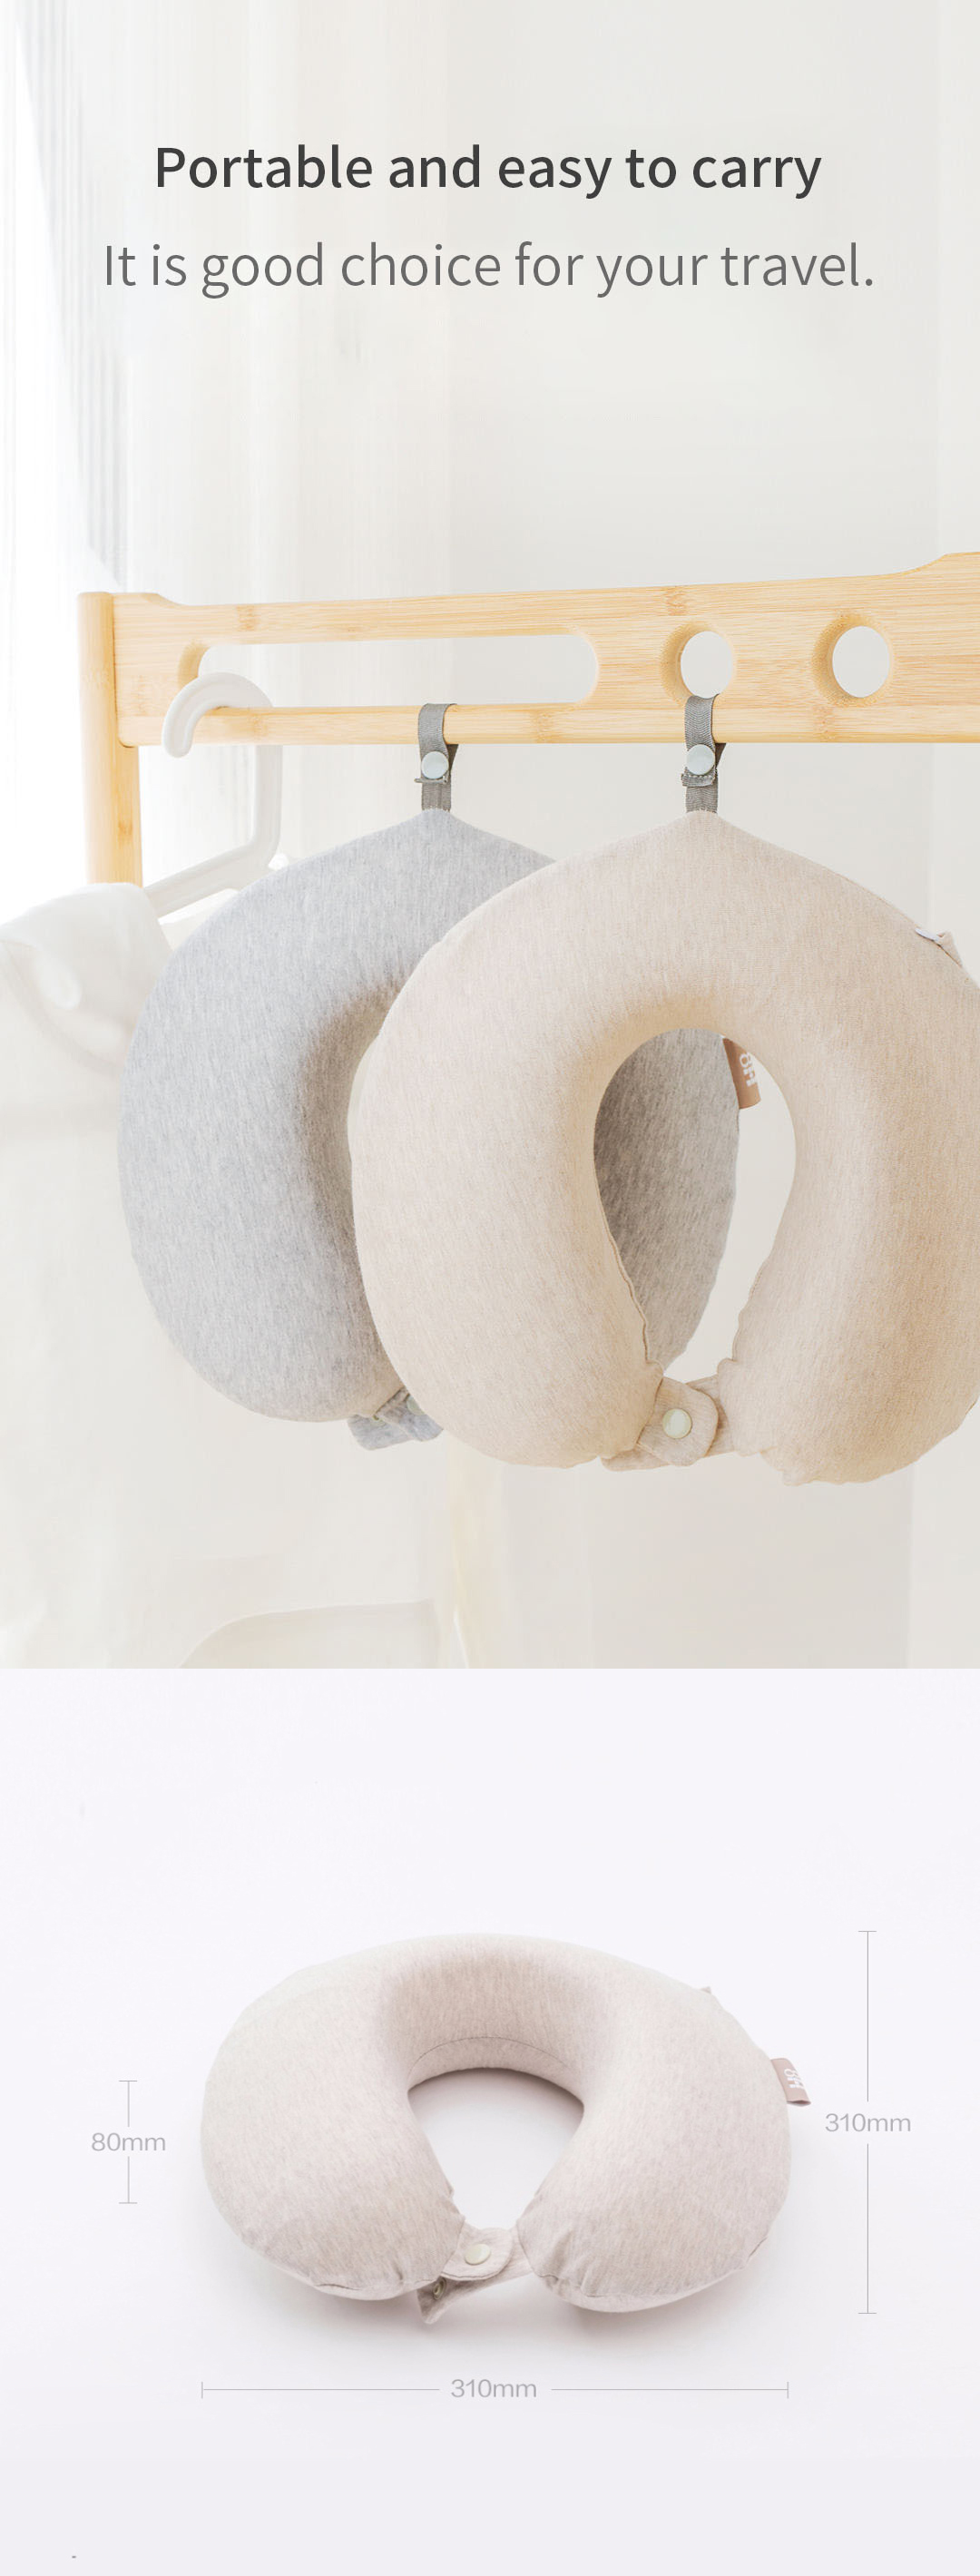 Xiaomi 8H Original 8H U Shaped Memory Foam Neck Protective Waist Pillow Antibacterial Portable Neck Pillow Cushion For Home Bedroom Car Rest